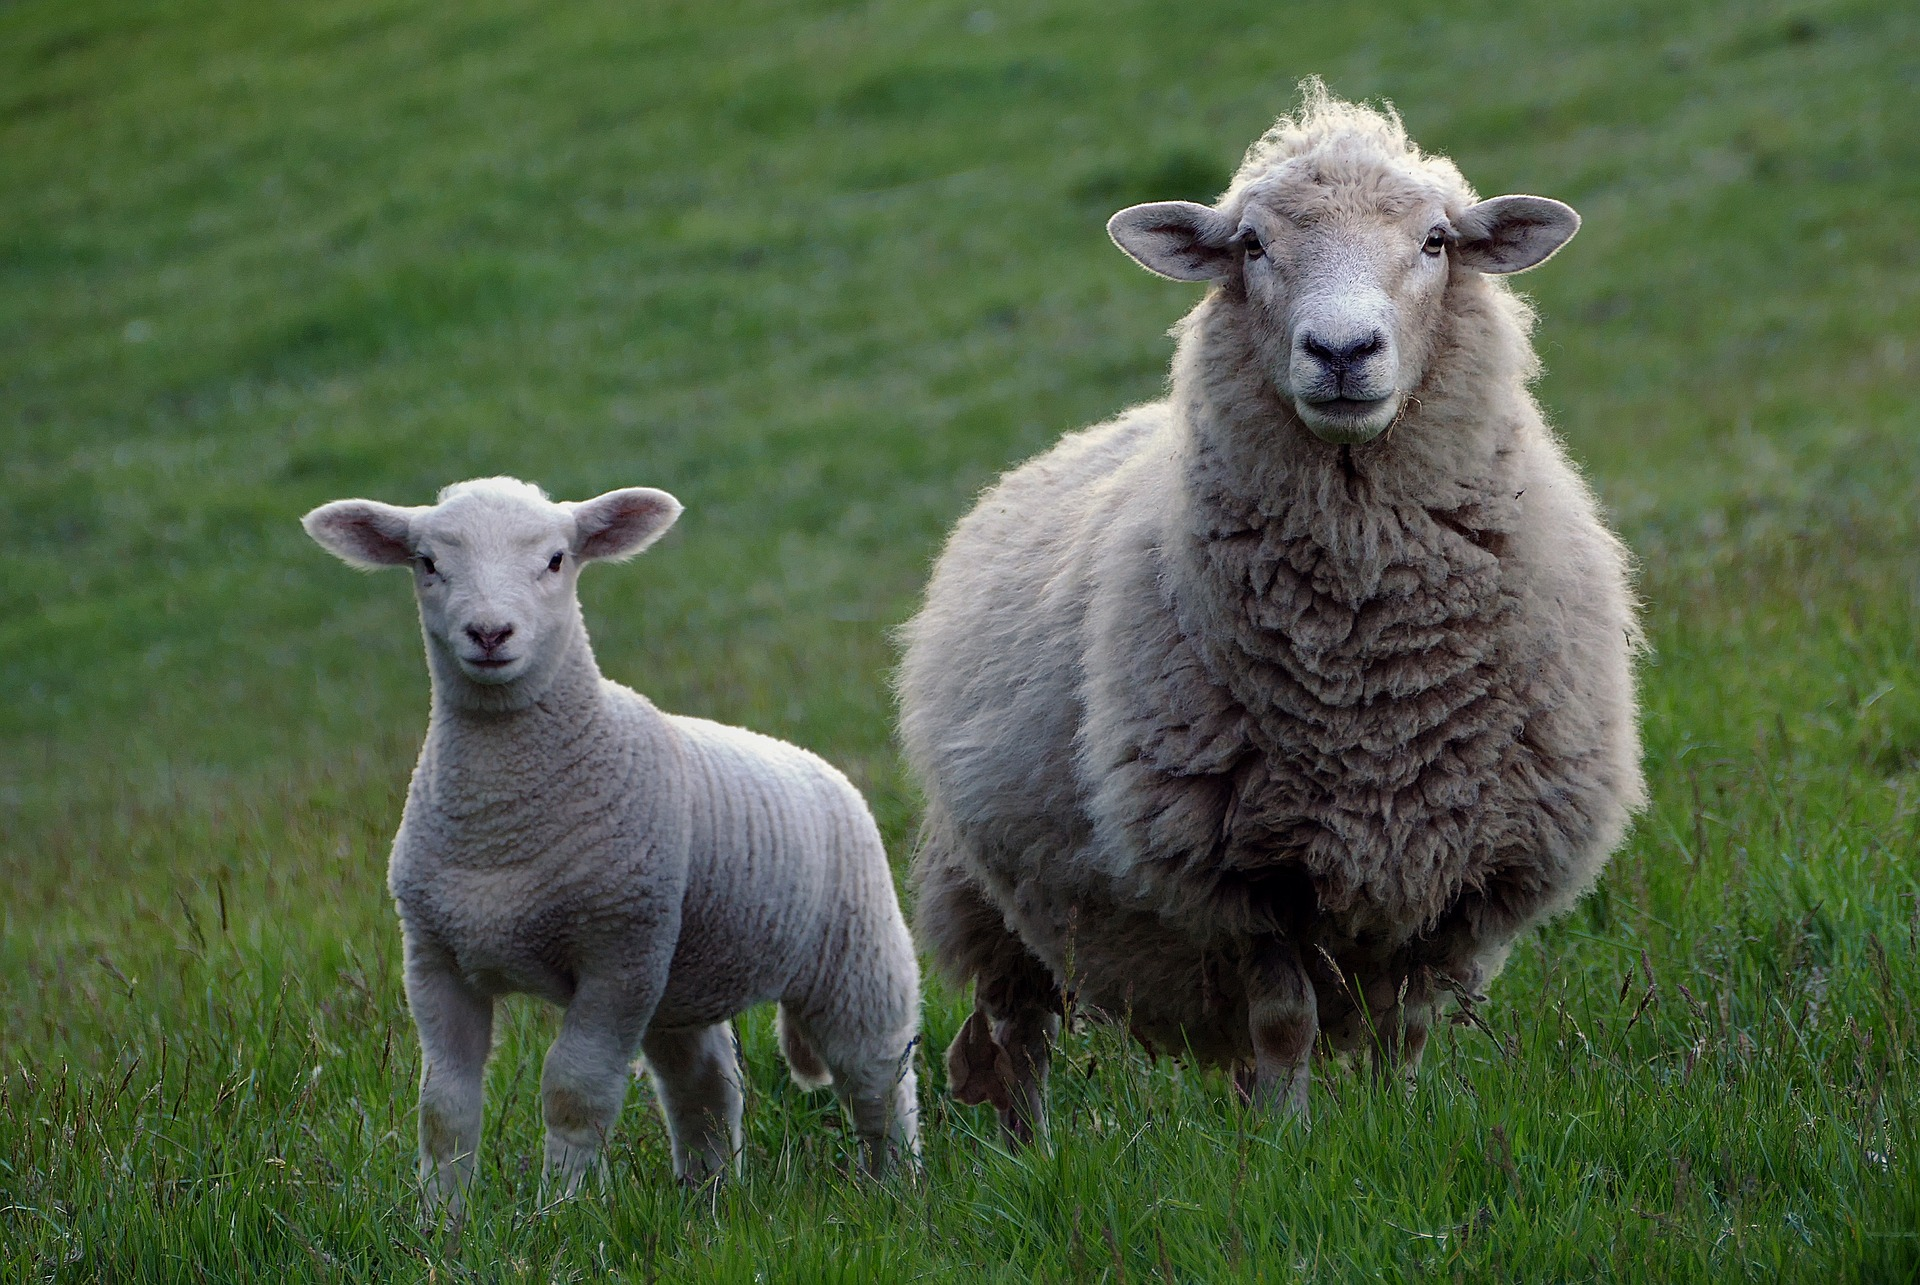 ewe_and_lamb_in_a_field.jpg